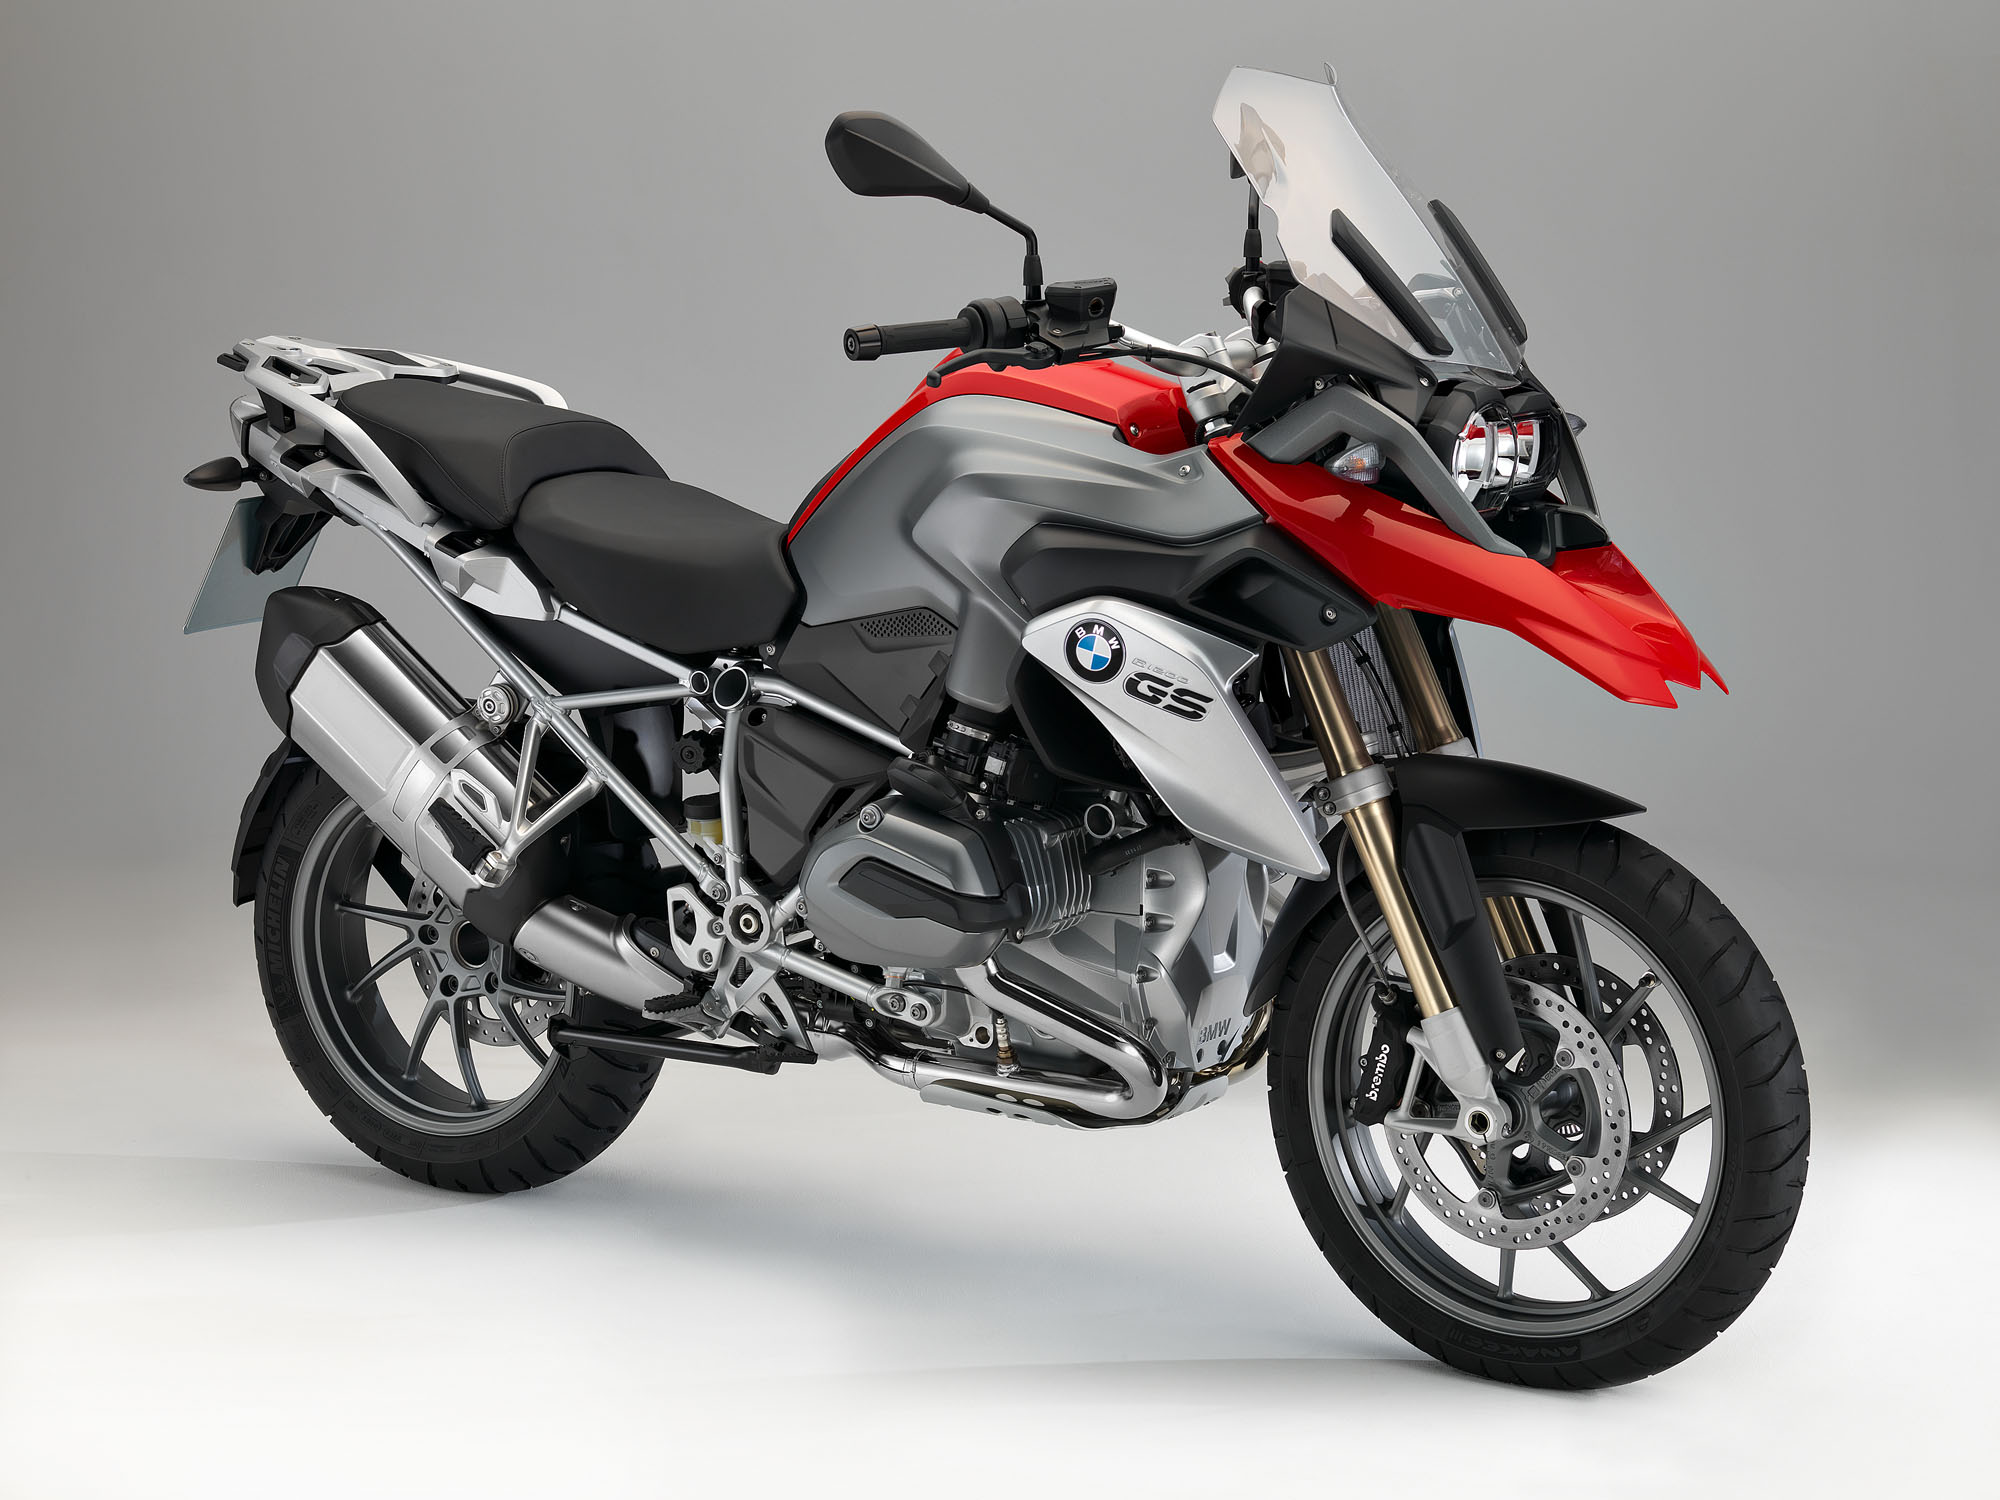 the brand new bmw r 1200 gs modelyear 2013 liquid cooled. Black Bedroom Furniture Sets. Home Design Ideas